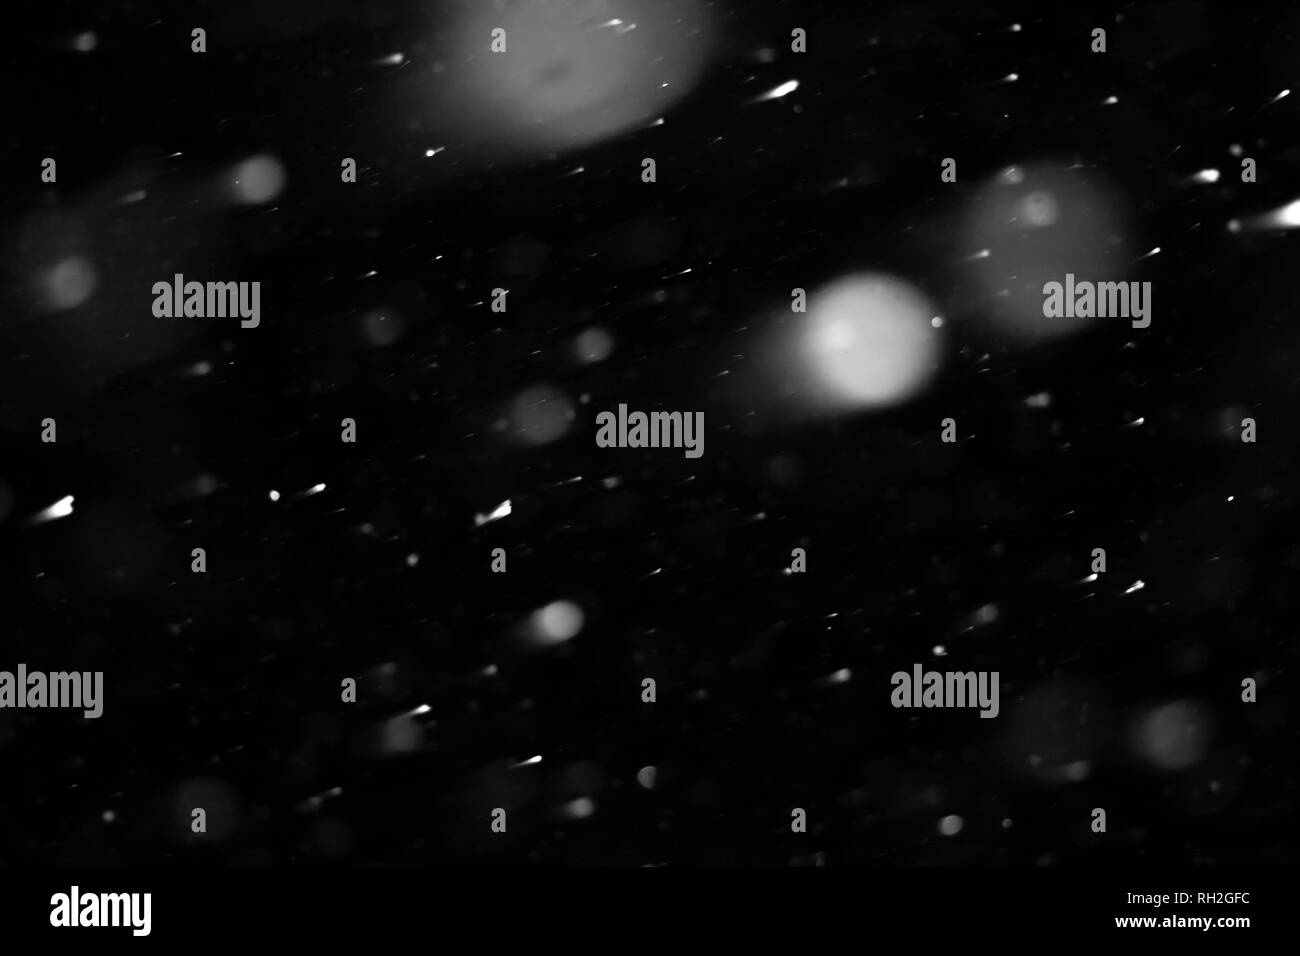 Isolated on black snow fall texture. Snow blizzard. Snowflakes isolated for design. Design element - Stock Image